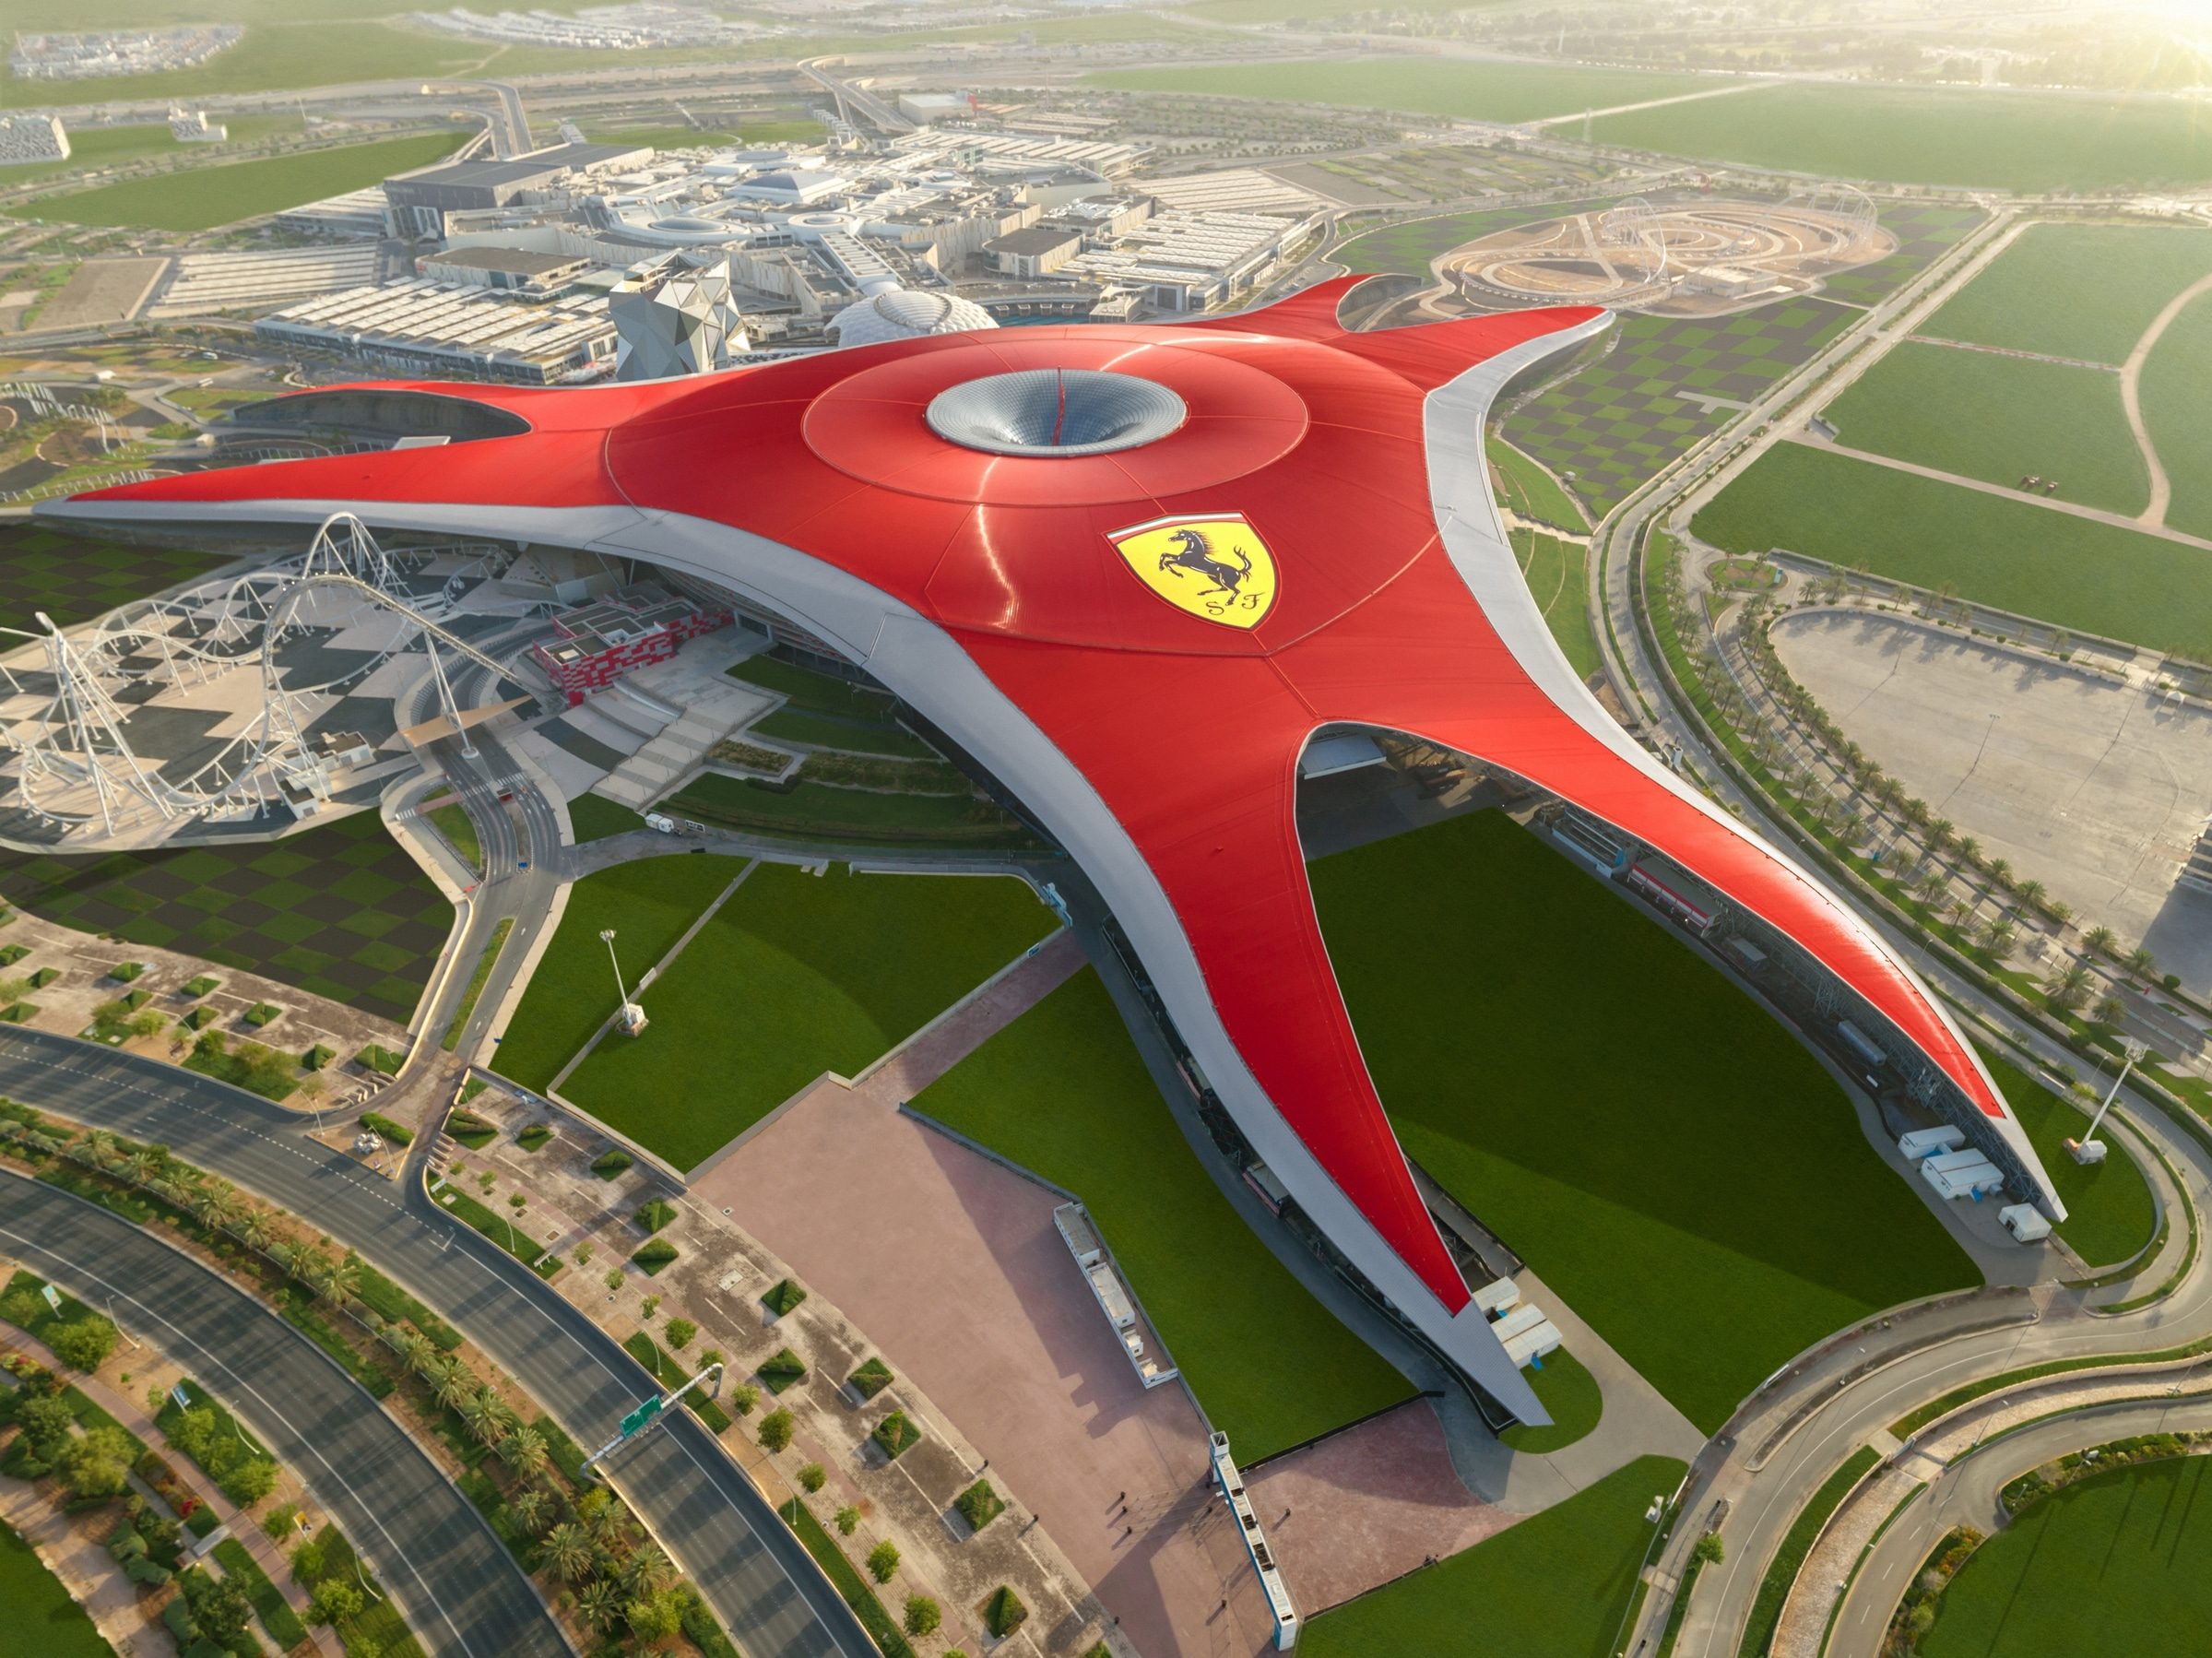 FERRARI WORLD ABU DHABI és nombrado parque temático lider mundial en los World travel awards 2019